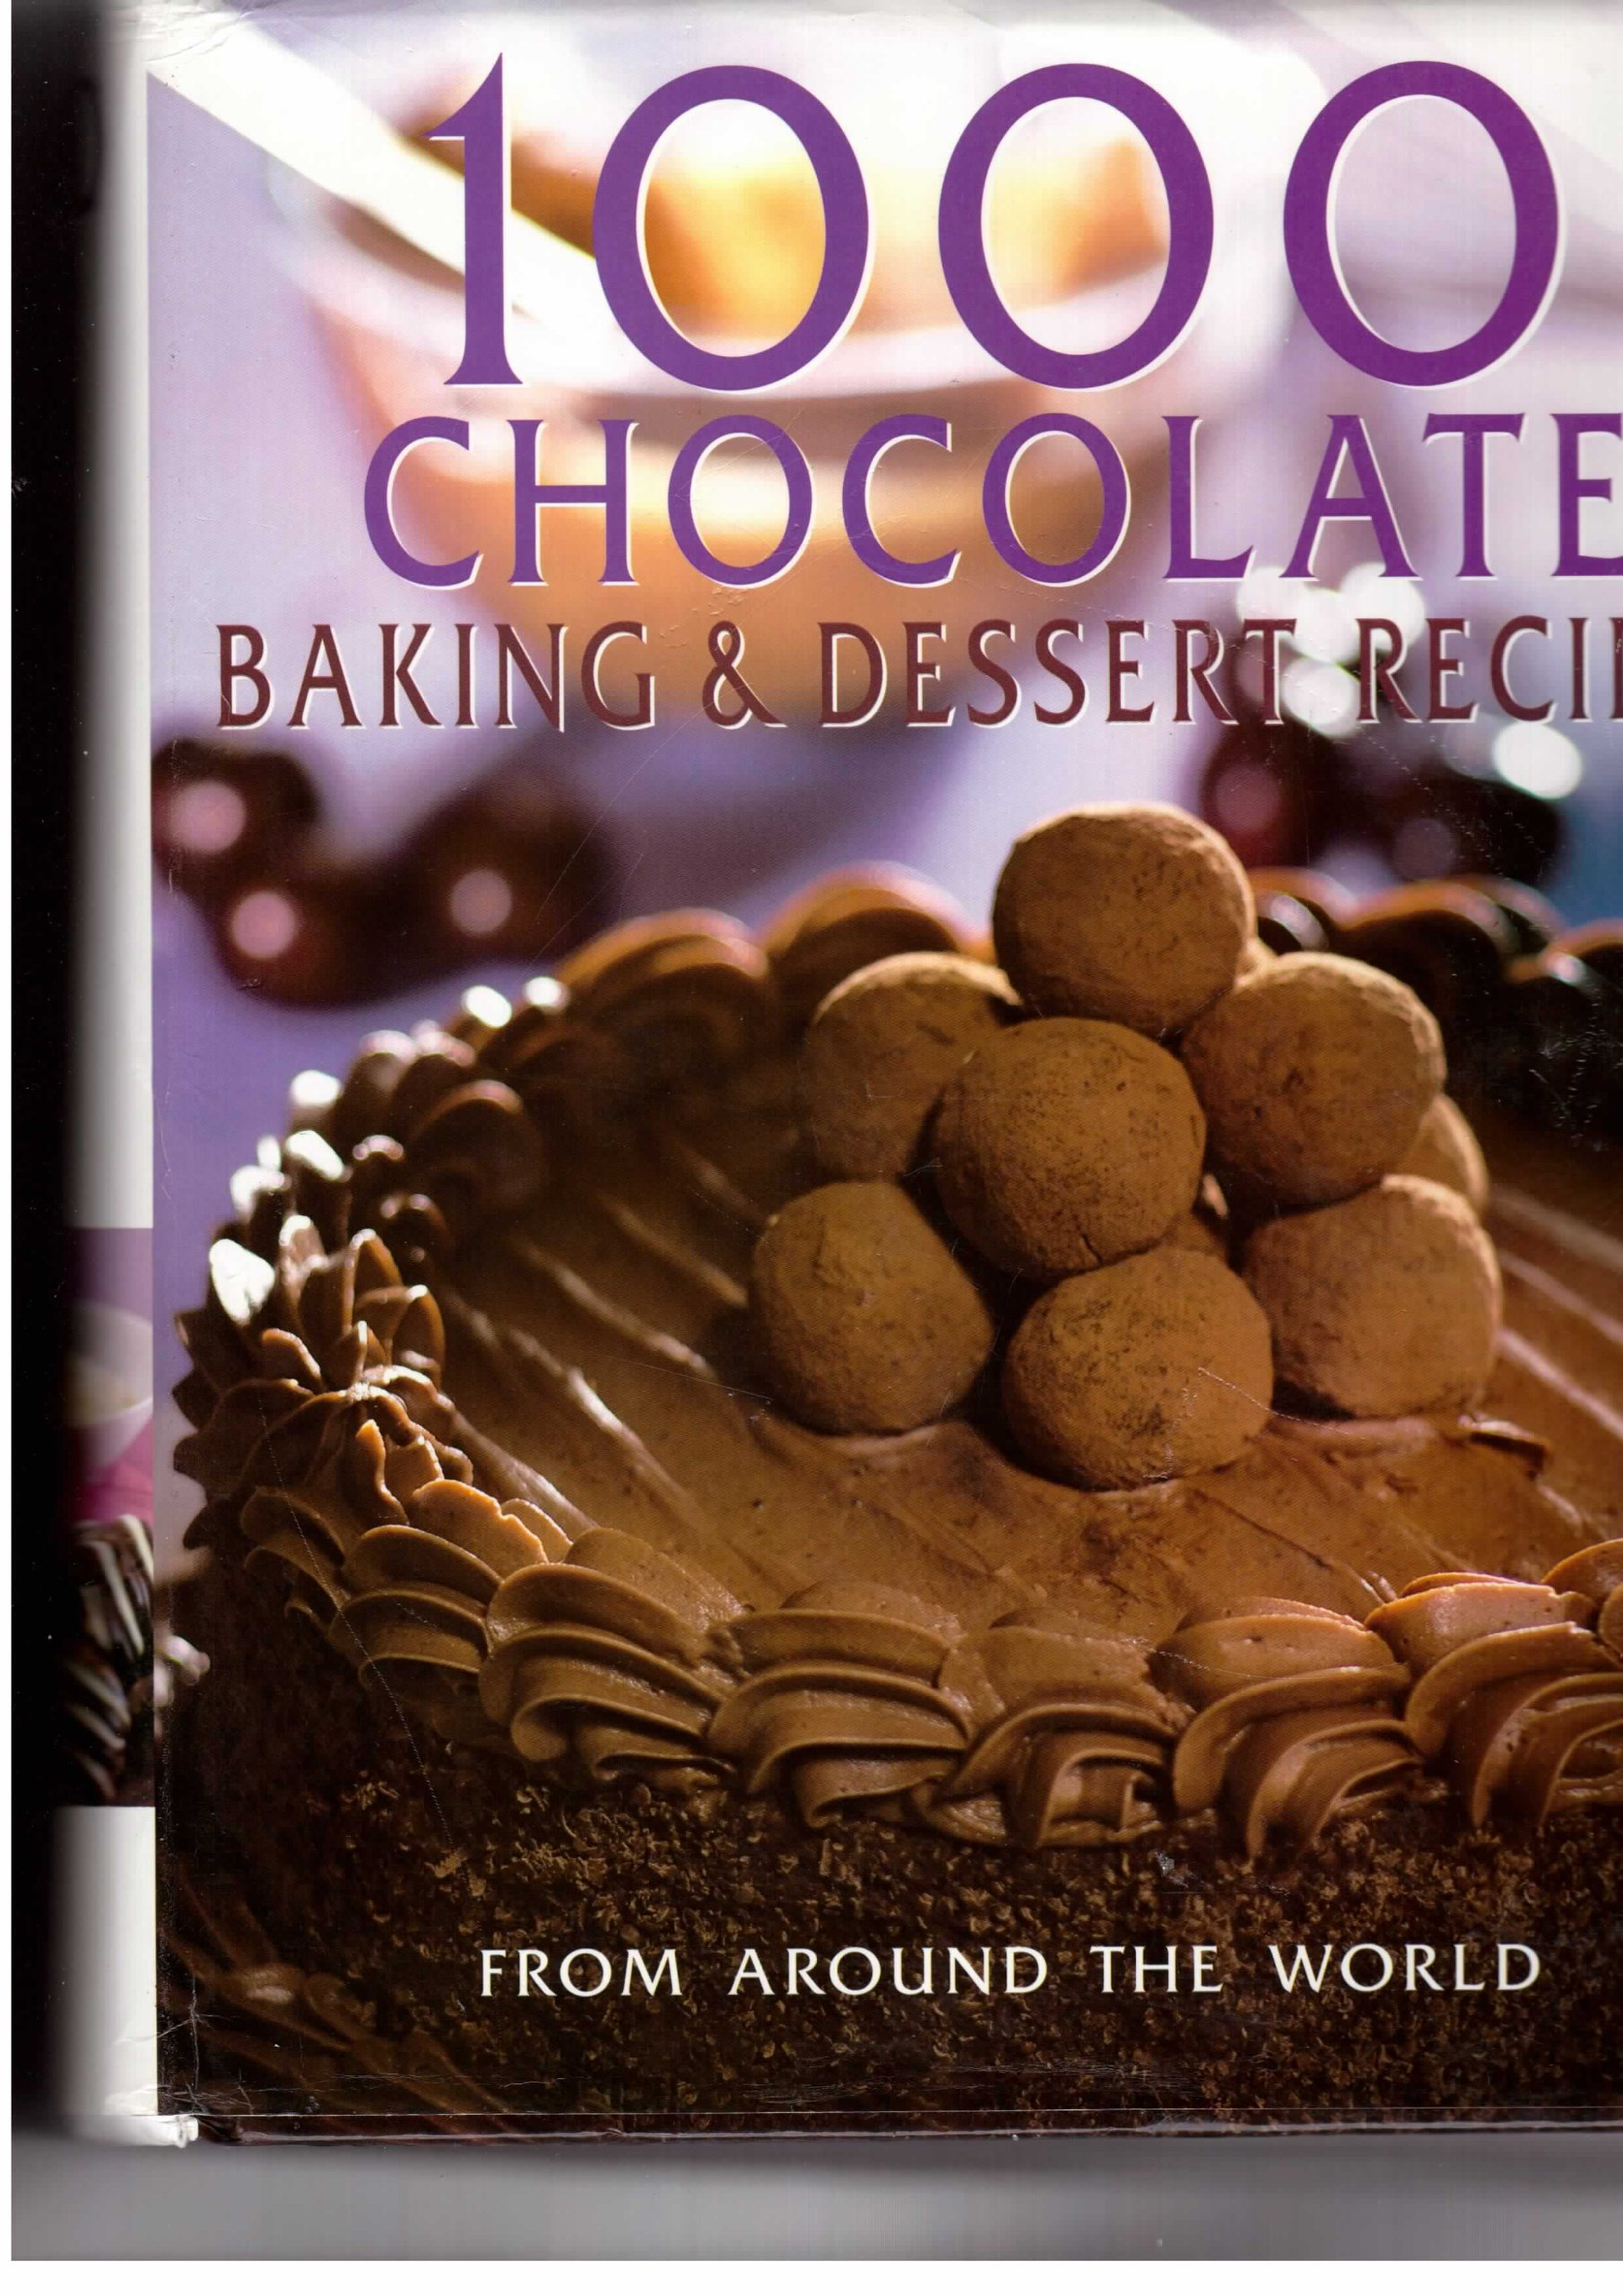 1000 Chocolate Baking & Dessert Recipes From Around the World ebook